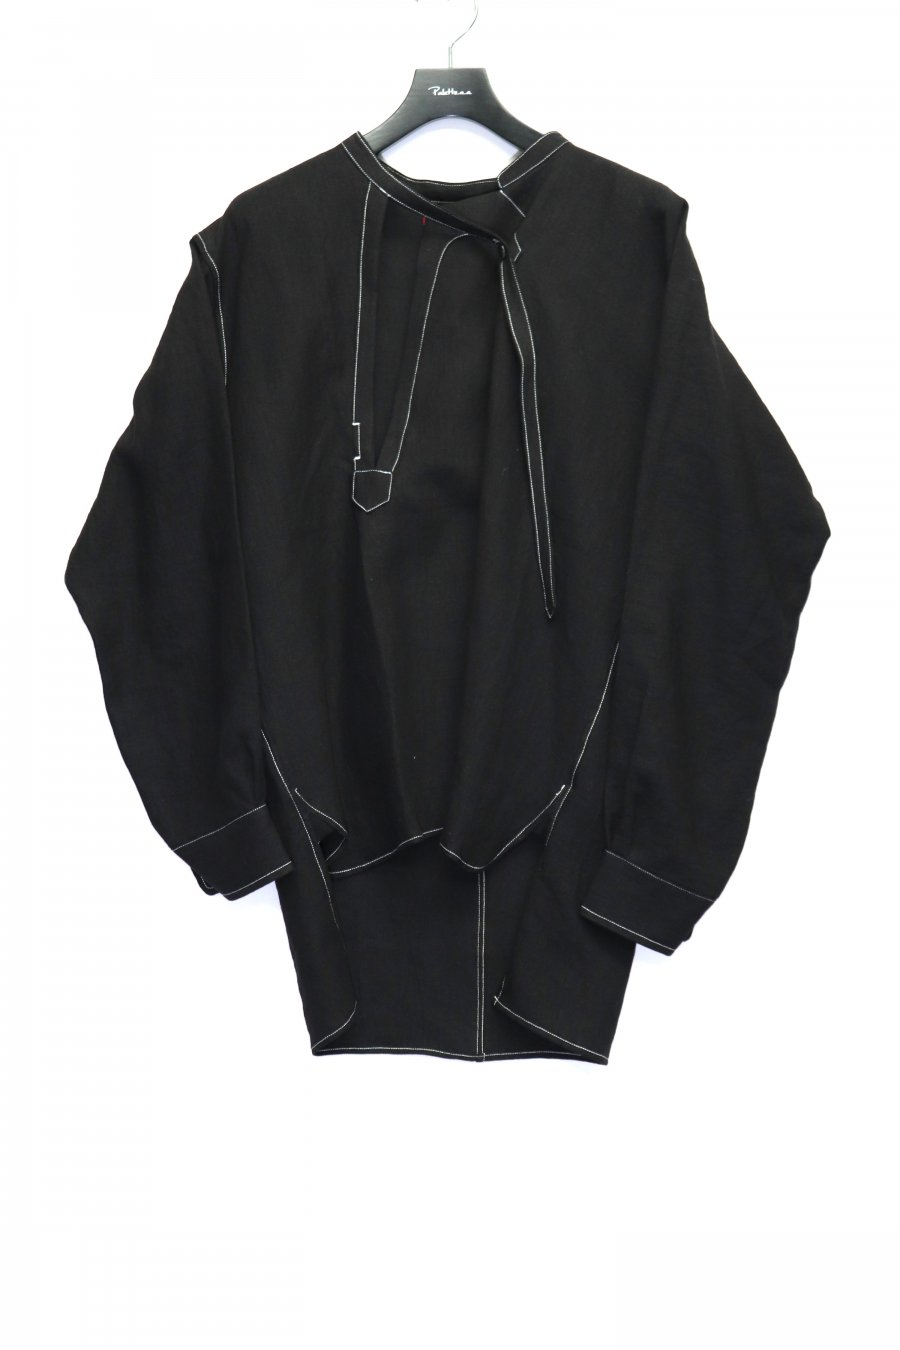 LEH  Band Top Shirt(BLACK)<img class='new_mark_img2' src='https://img.shop-pro.jp/img/new/icons15.gif' style='border:none;display:inline;margin:0px;padding:0px;width:auto;' />